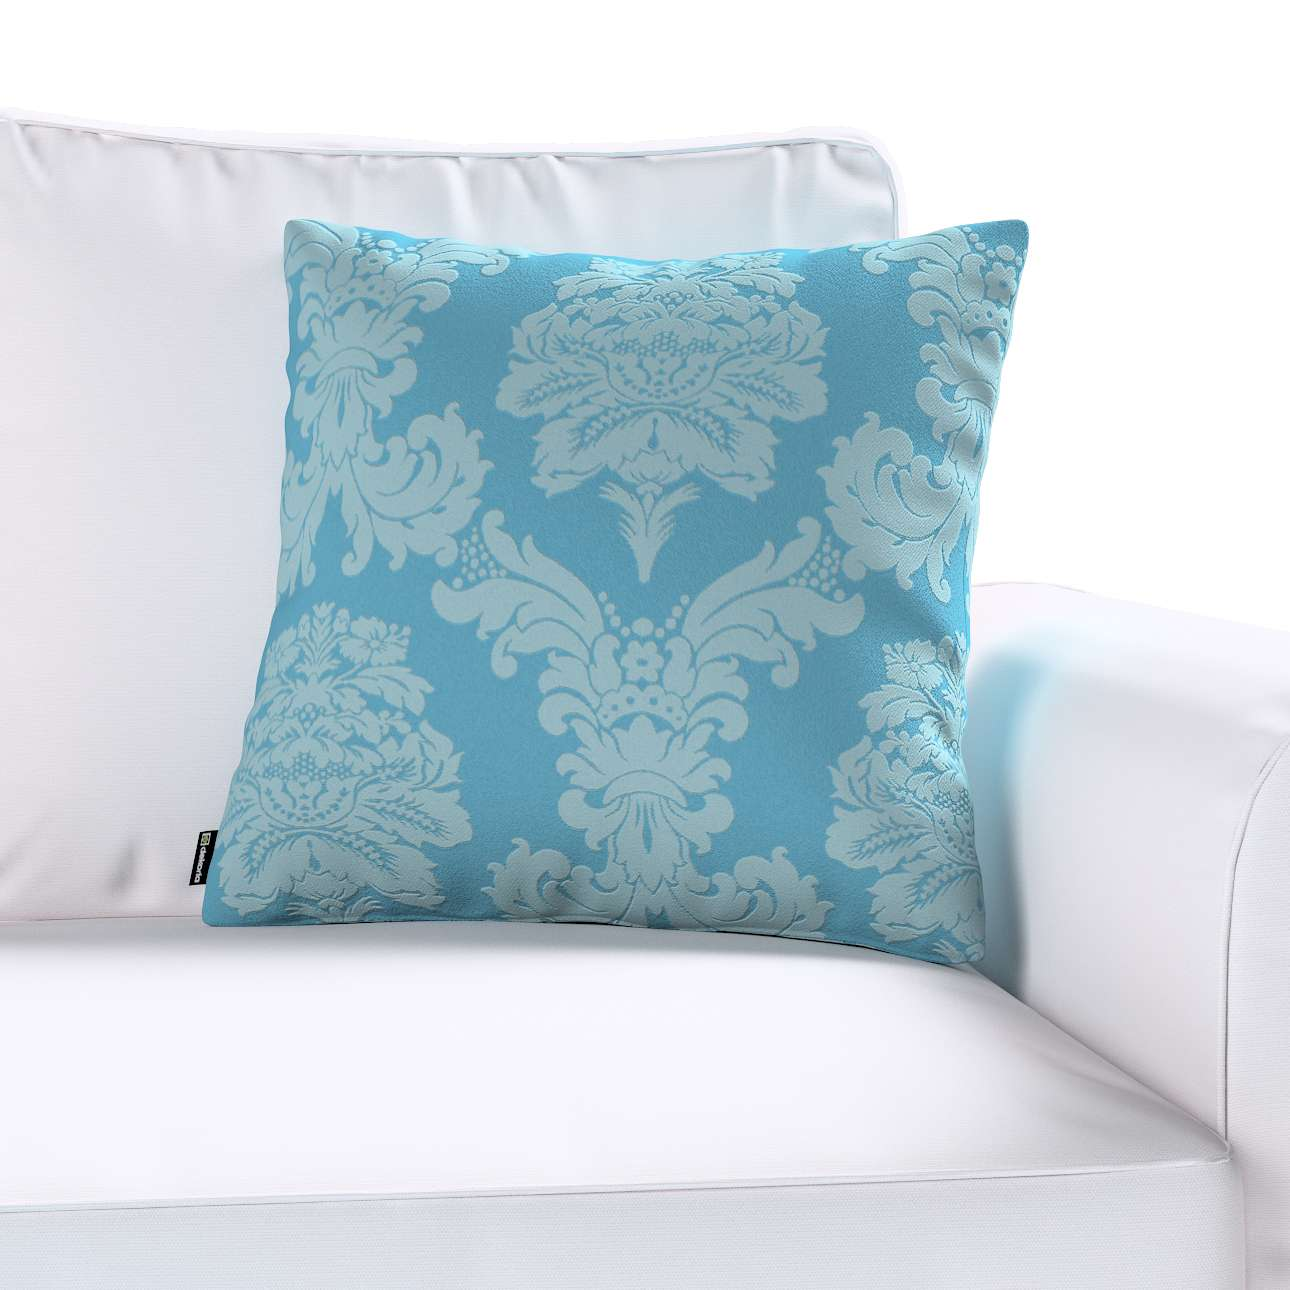 Kinga cushion cover 43 x 43 cm (17 x 17 inch) in collection Damasco, fabric: 613-67